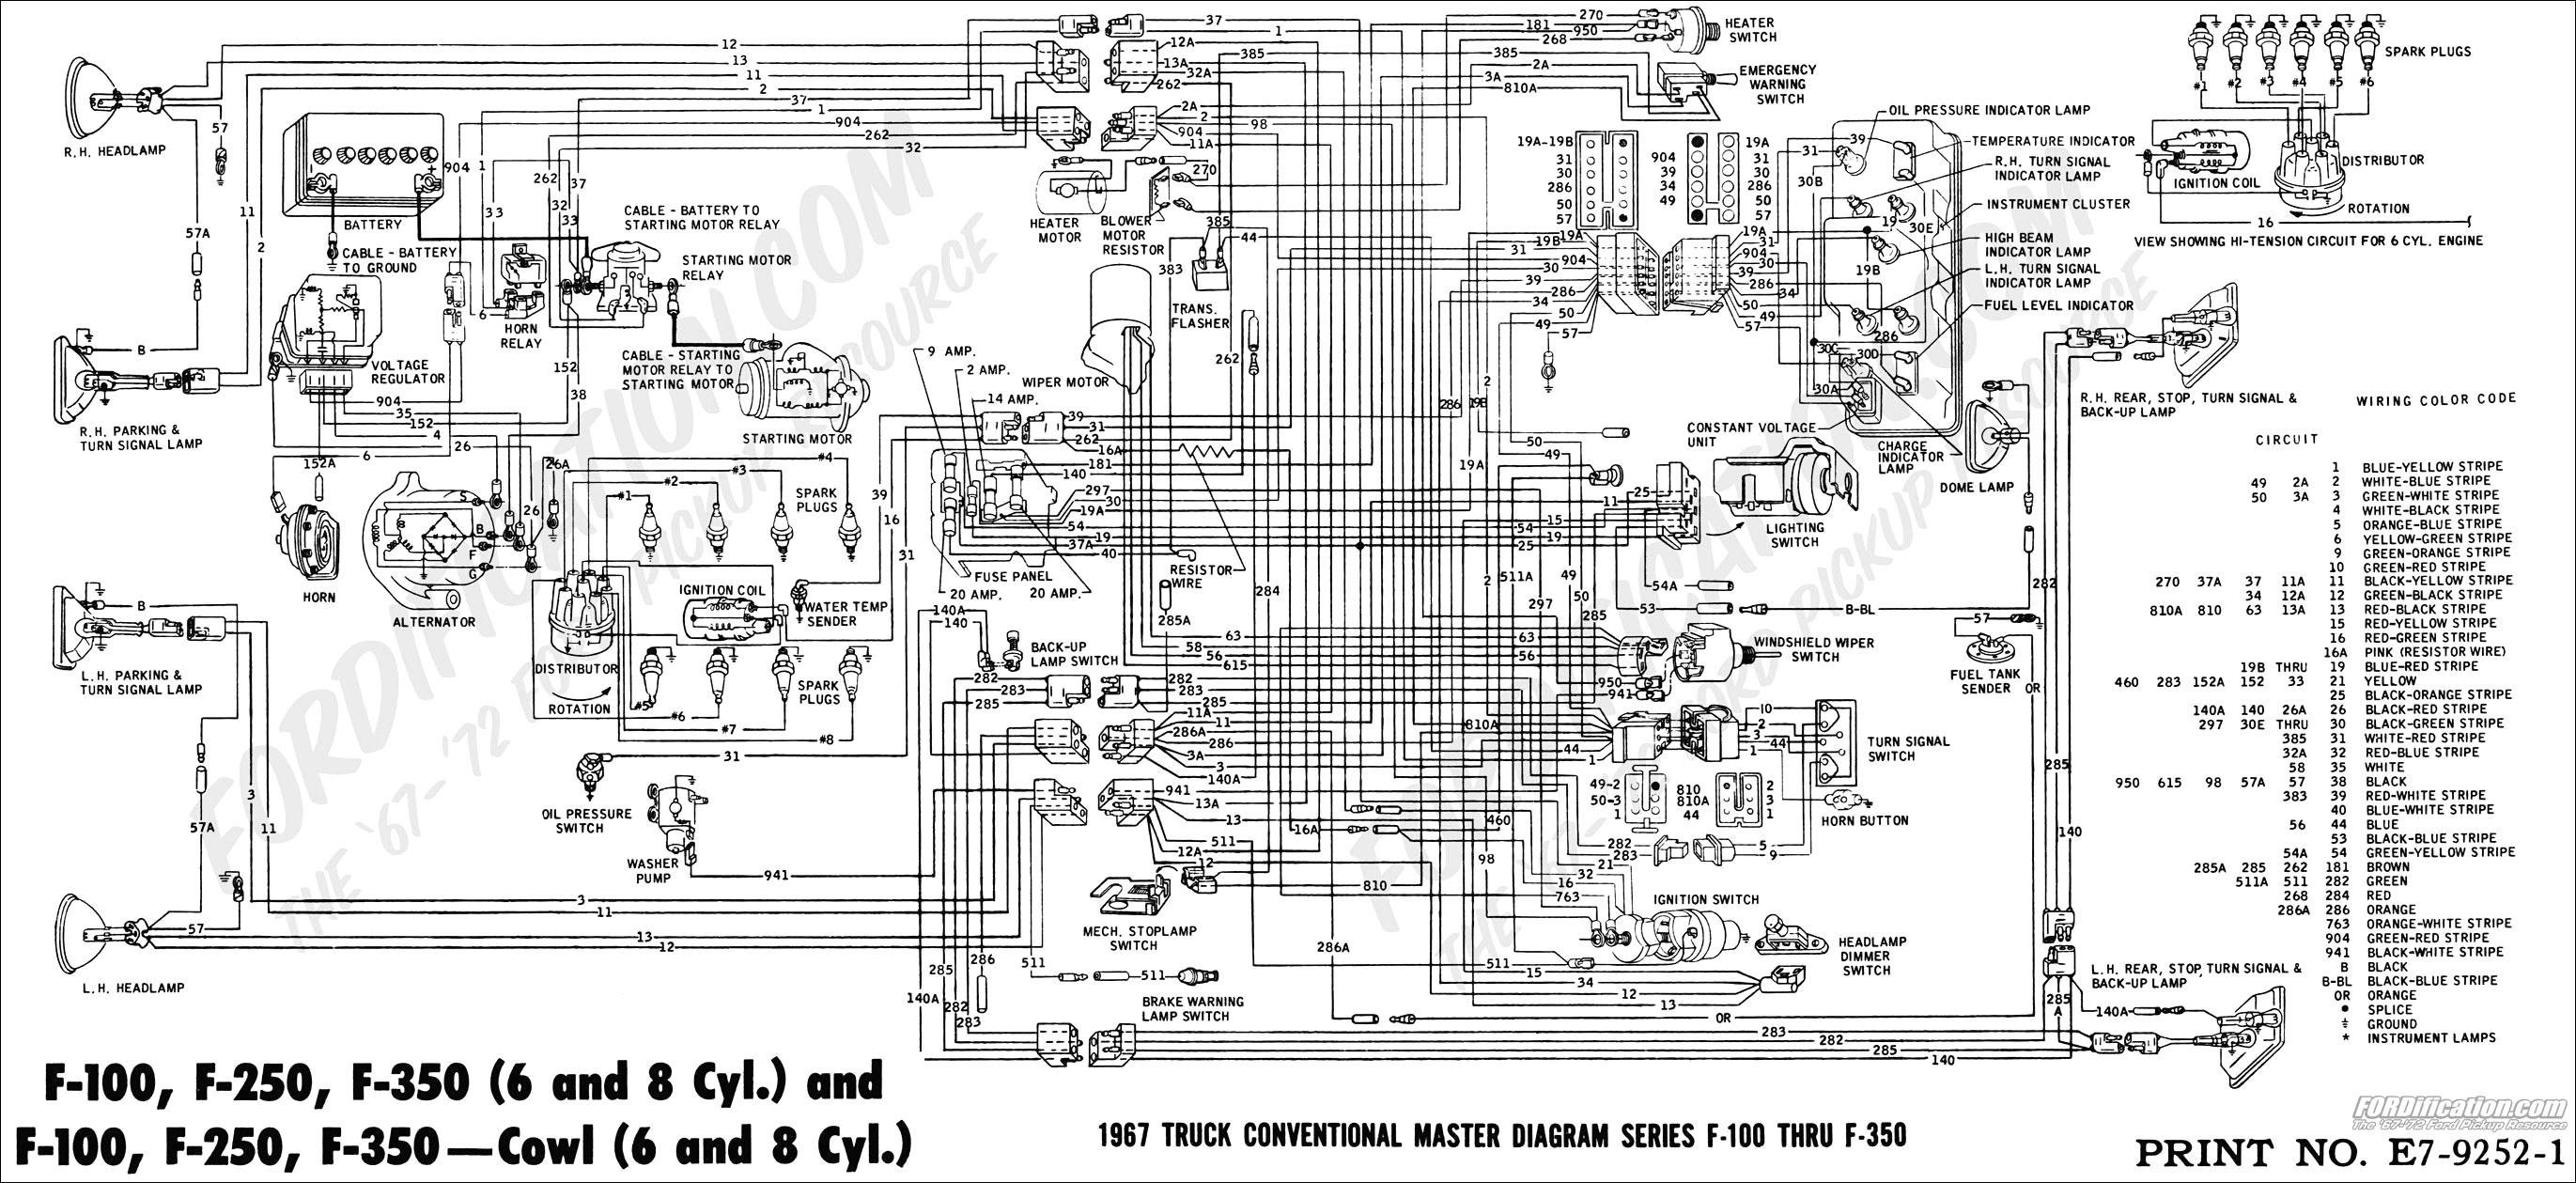 1984 F150 Starter Wiring Diagram Honda Motorcycle Wire Diagram Begeboy Wiring Diagram Source